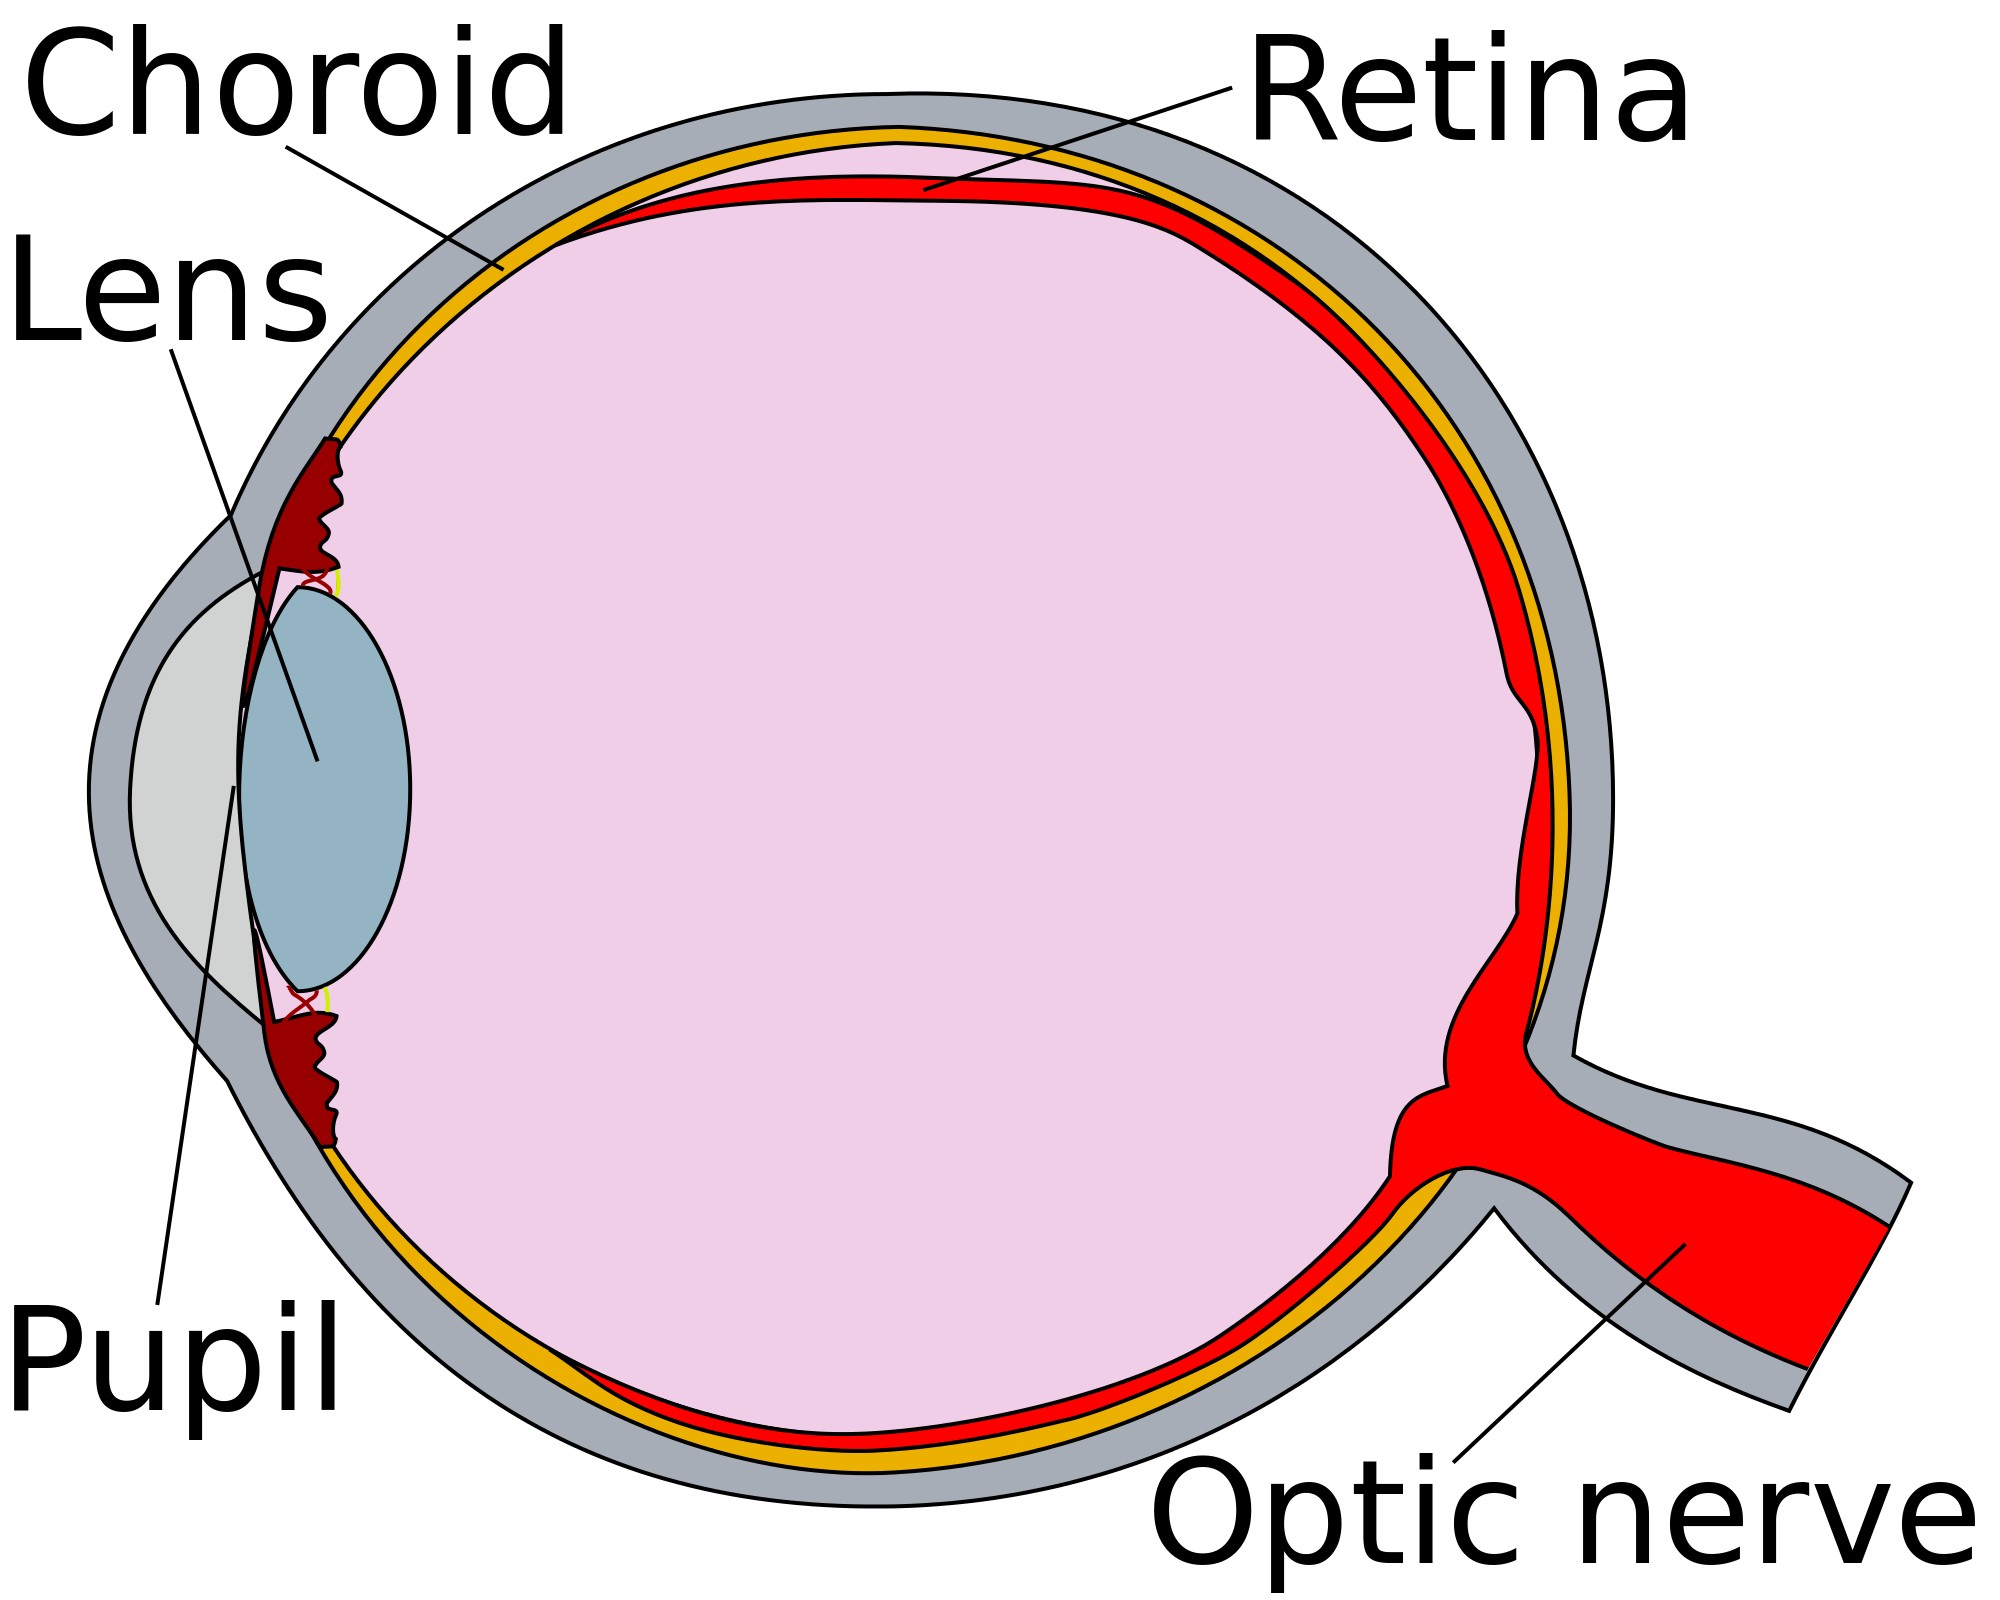 Eye Diagrams For Kids Anatomy Of The Human Car Accident Head Injury Claims Get Compensation You Deserve